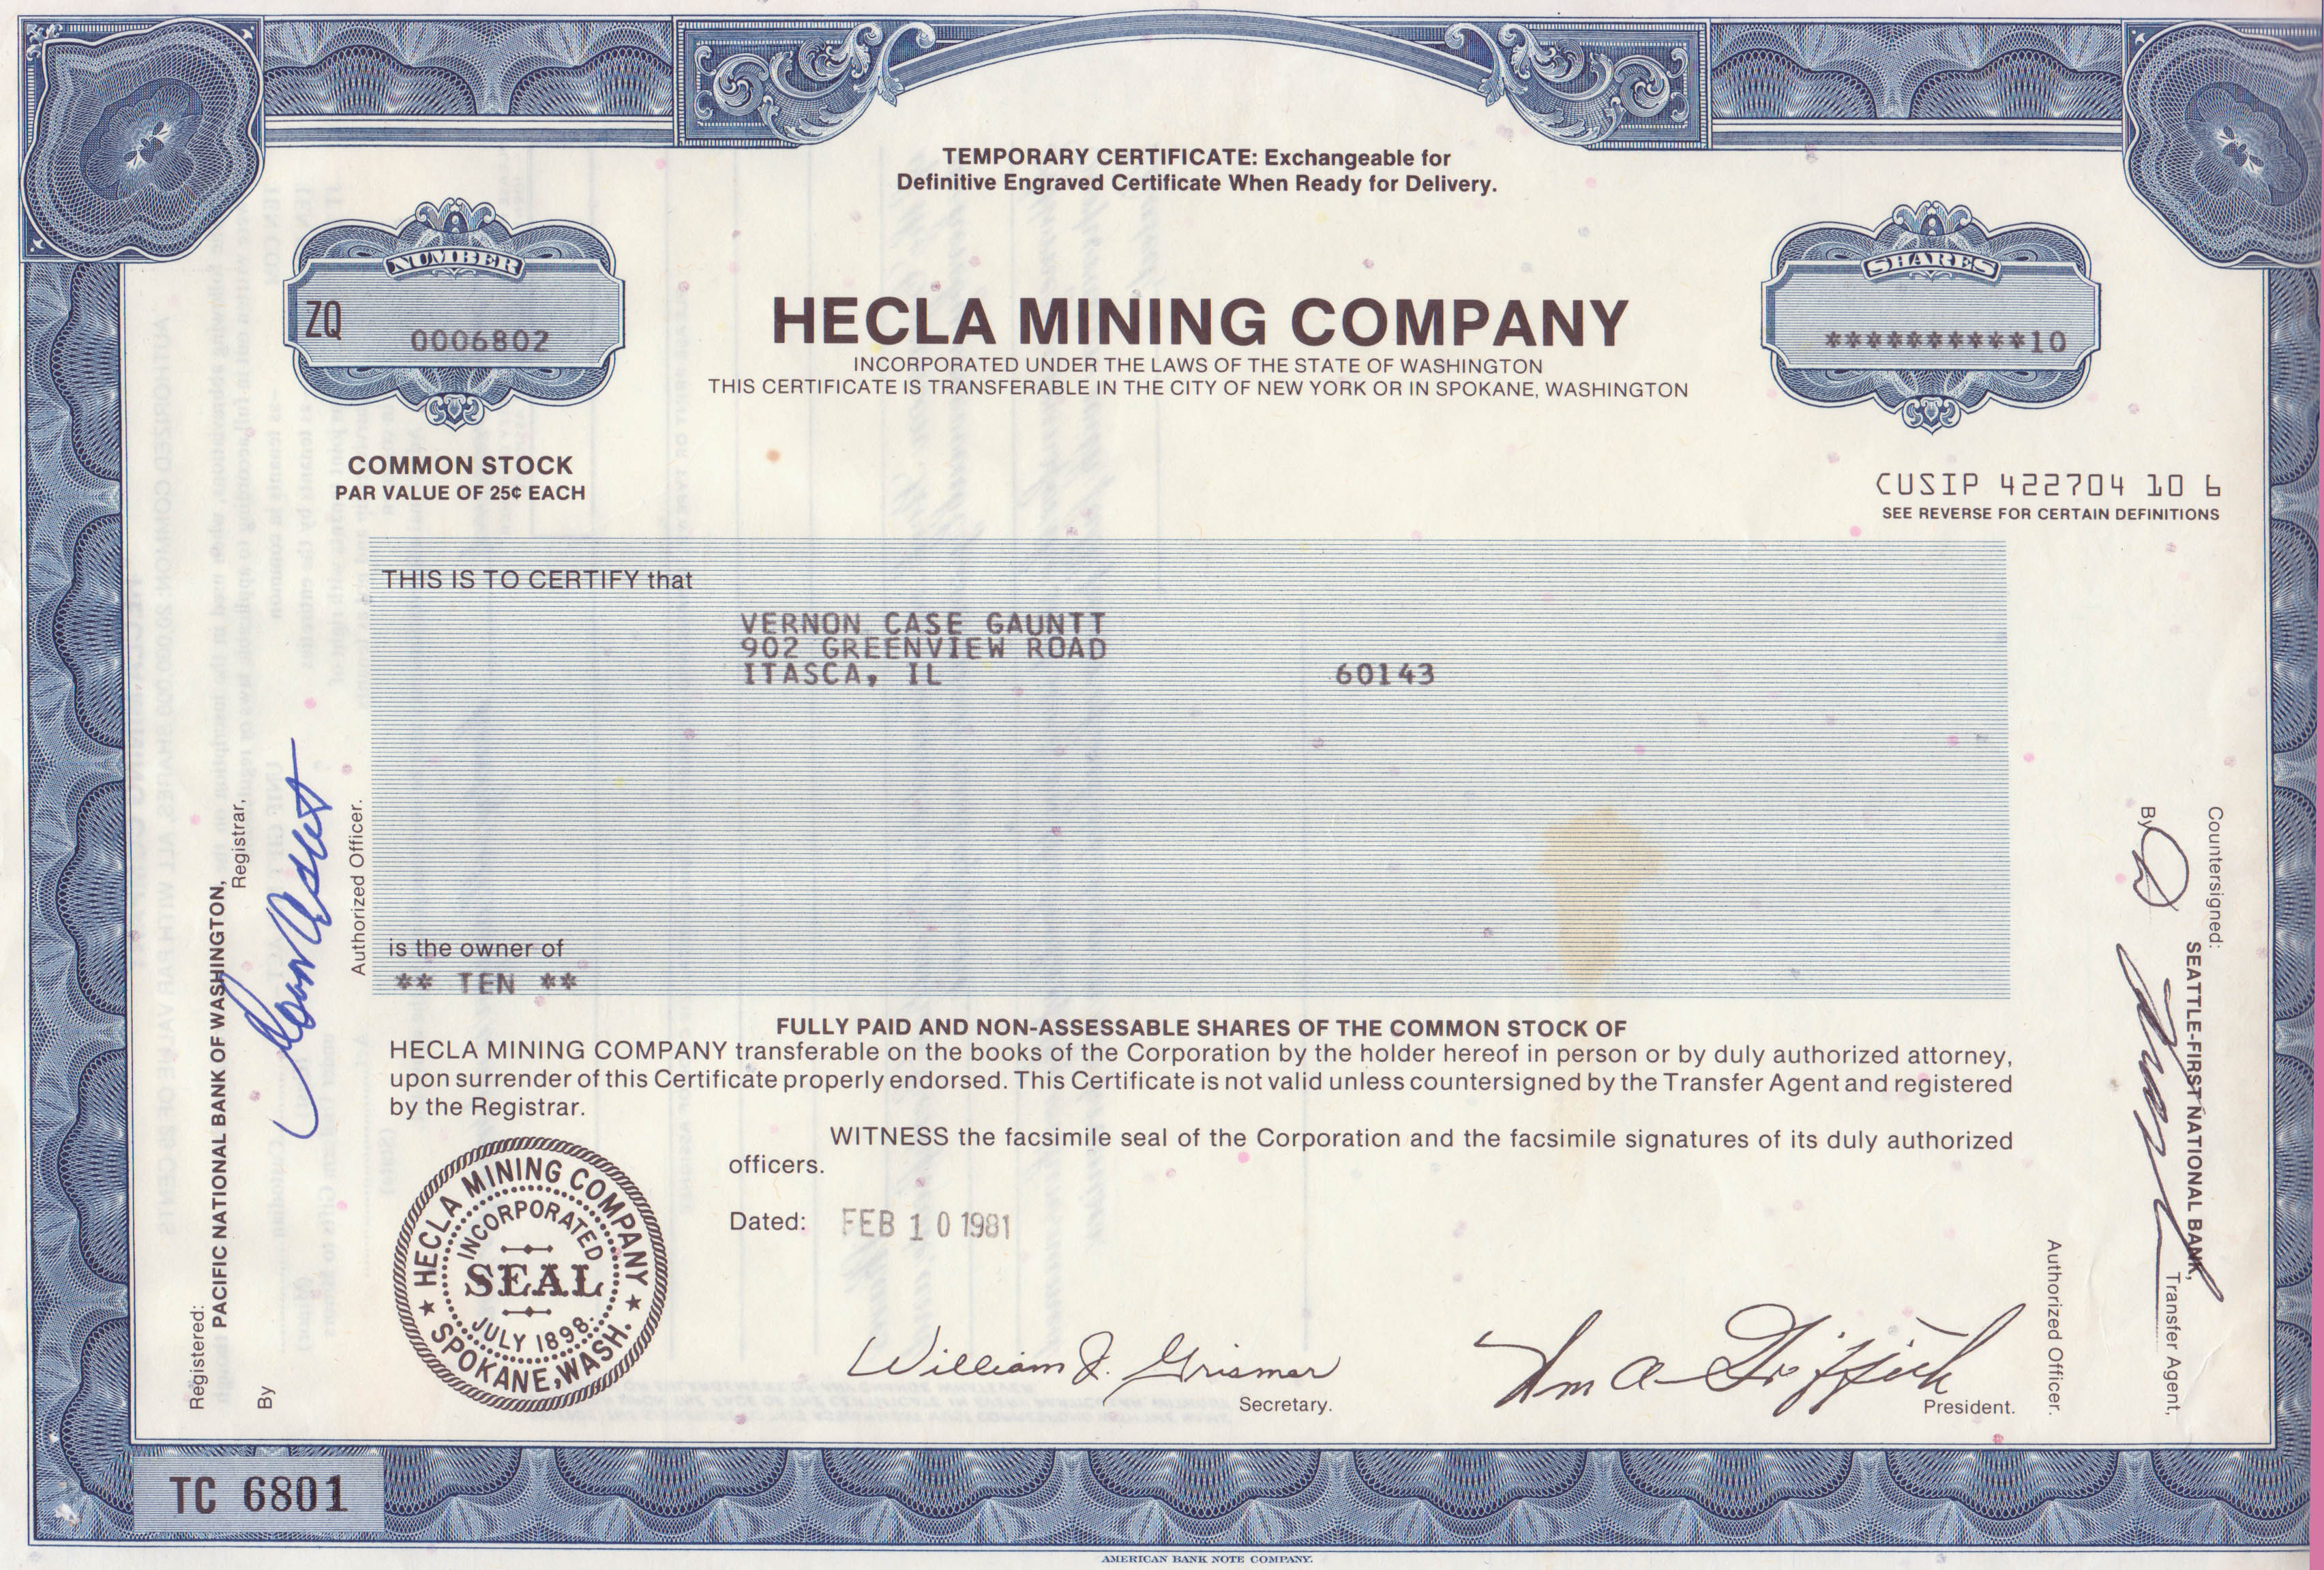 ten shares of Hecla Mining Company